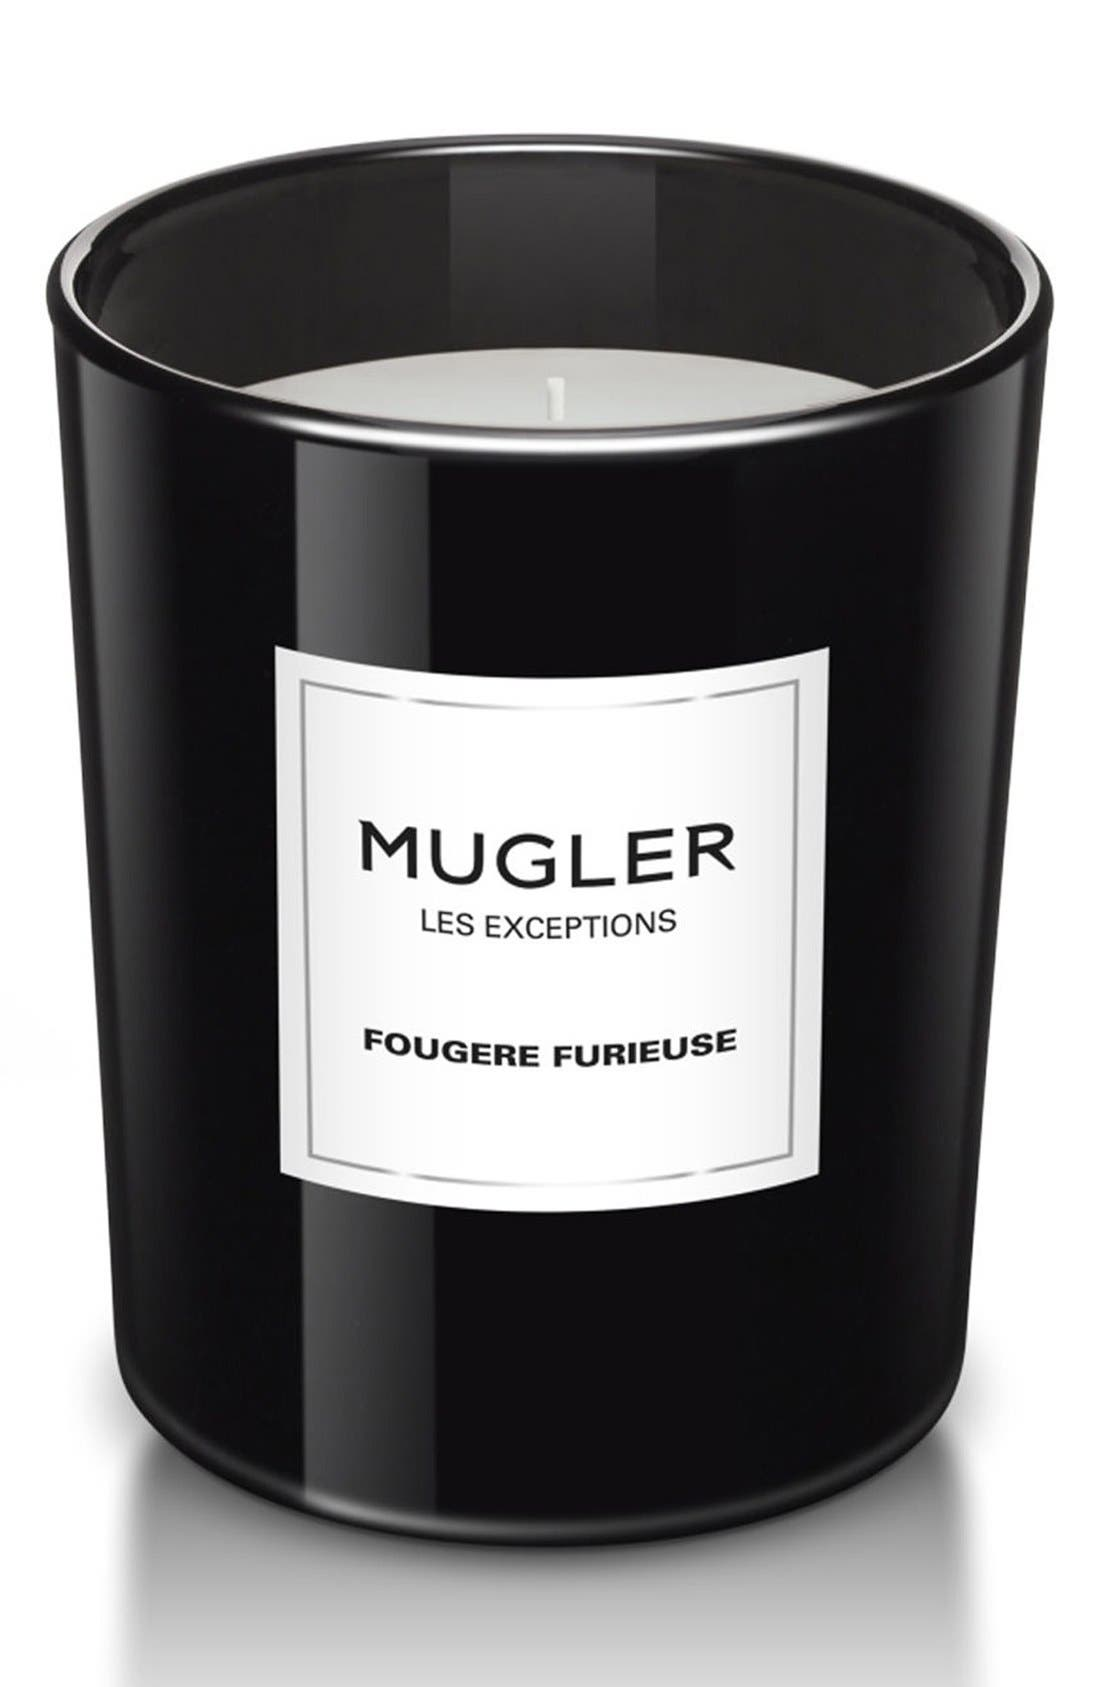 Mugler 'Les Exceptions - Fougere Furieuse' Candle